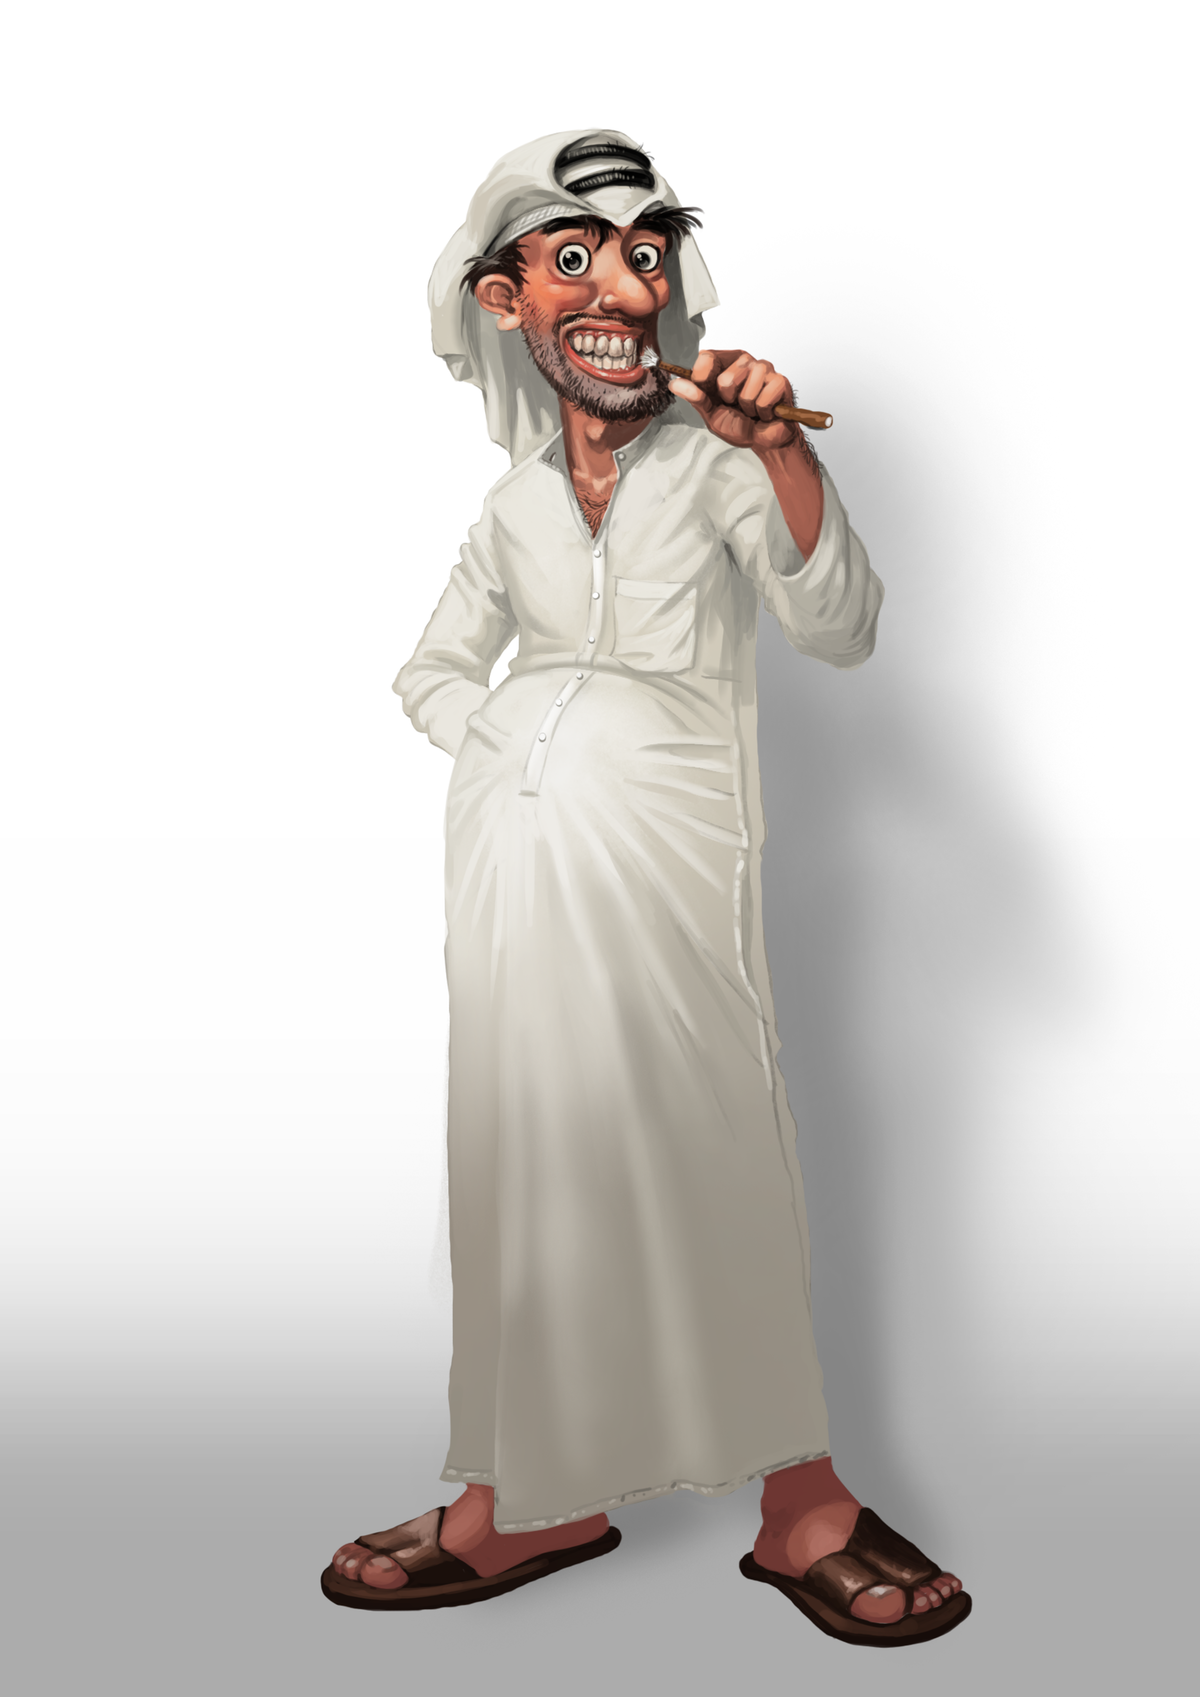 Funny Arab Characters Creation needed ( Arabian Gulf Region ). I have a clear Idea and samples.